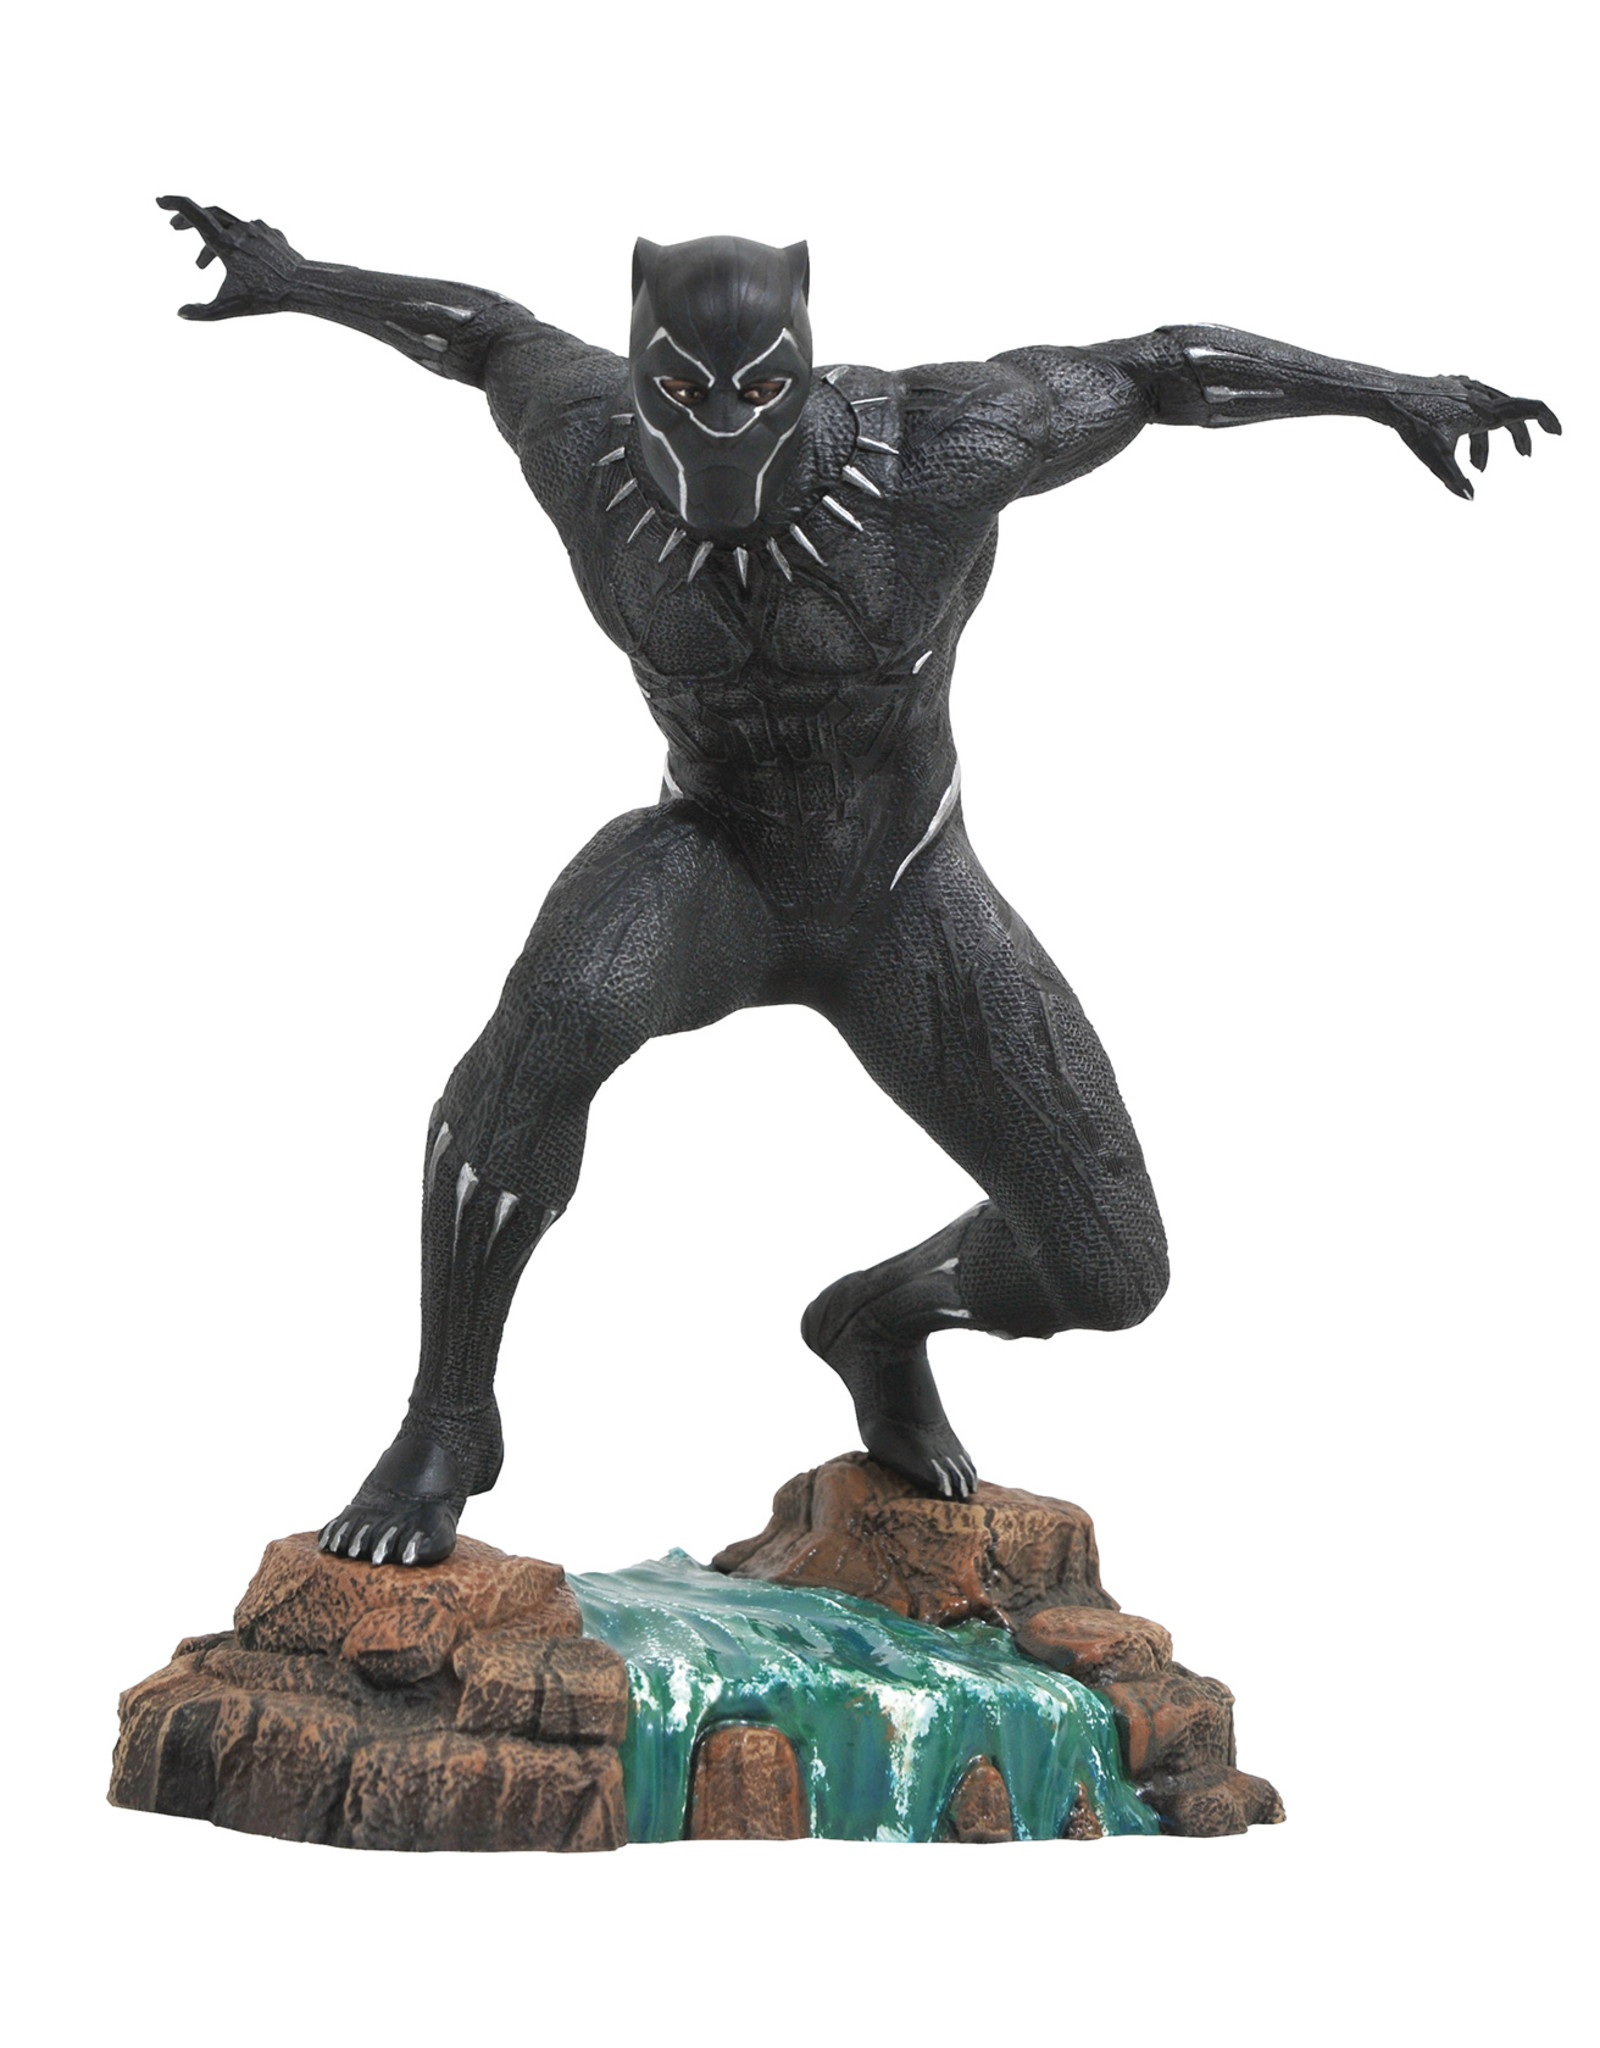 DIAMOND SELECT TOYS LLC MARVEL GALLERY BLACK PANTHER MOVIE PVC FIGURE